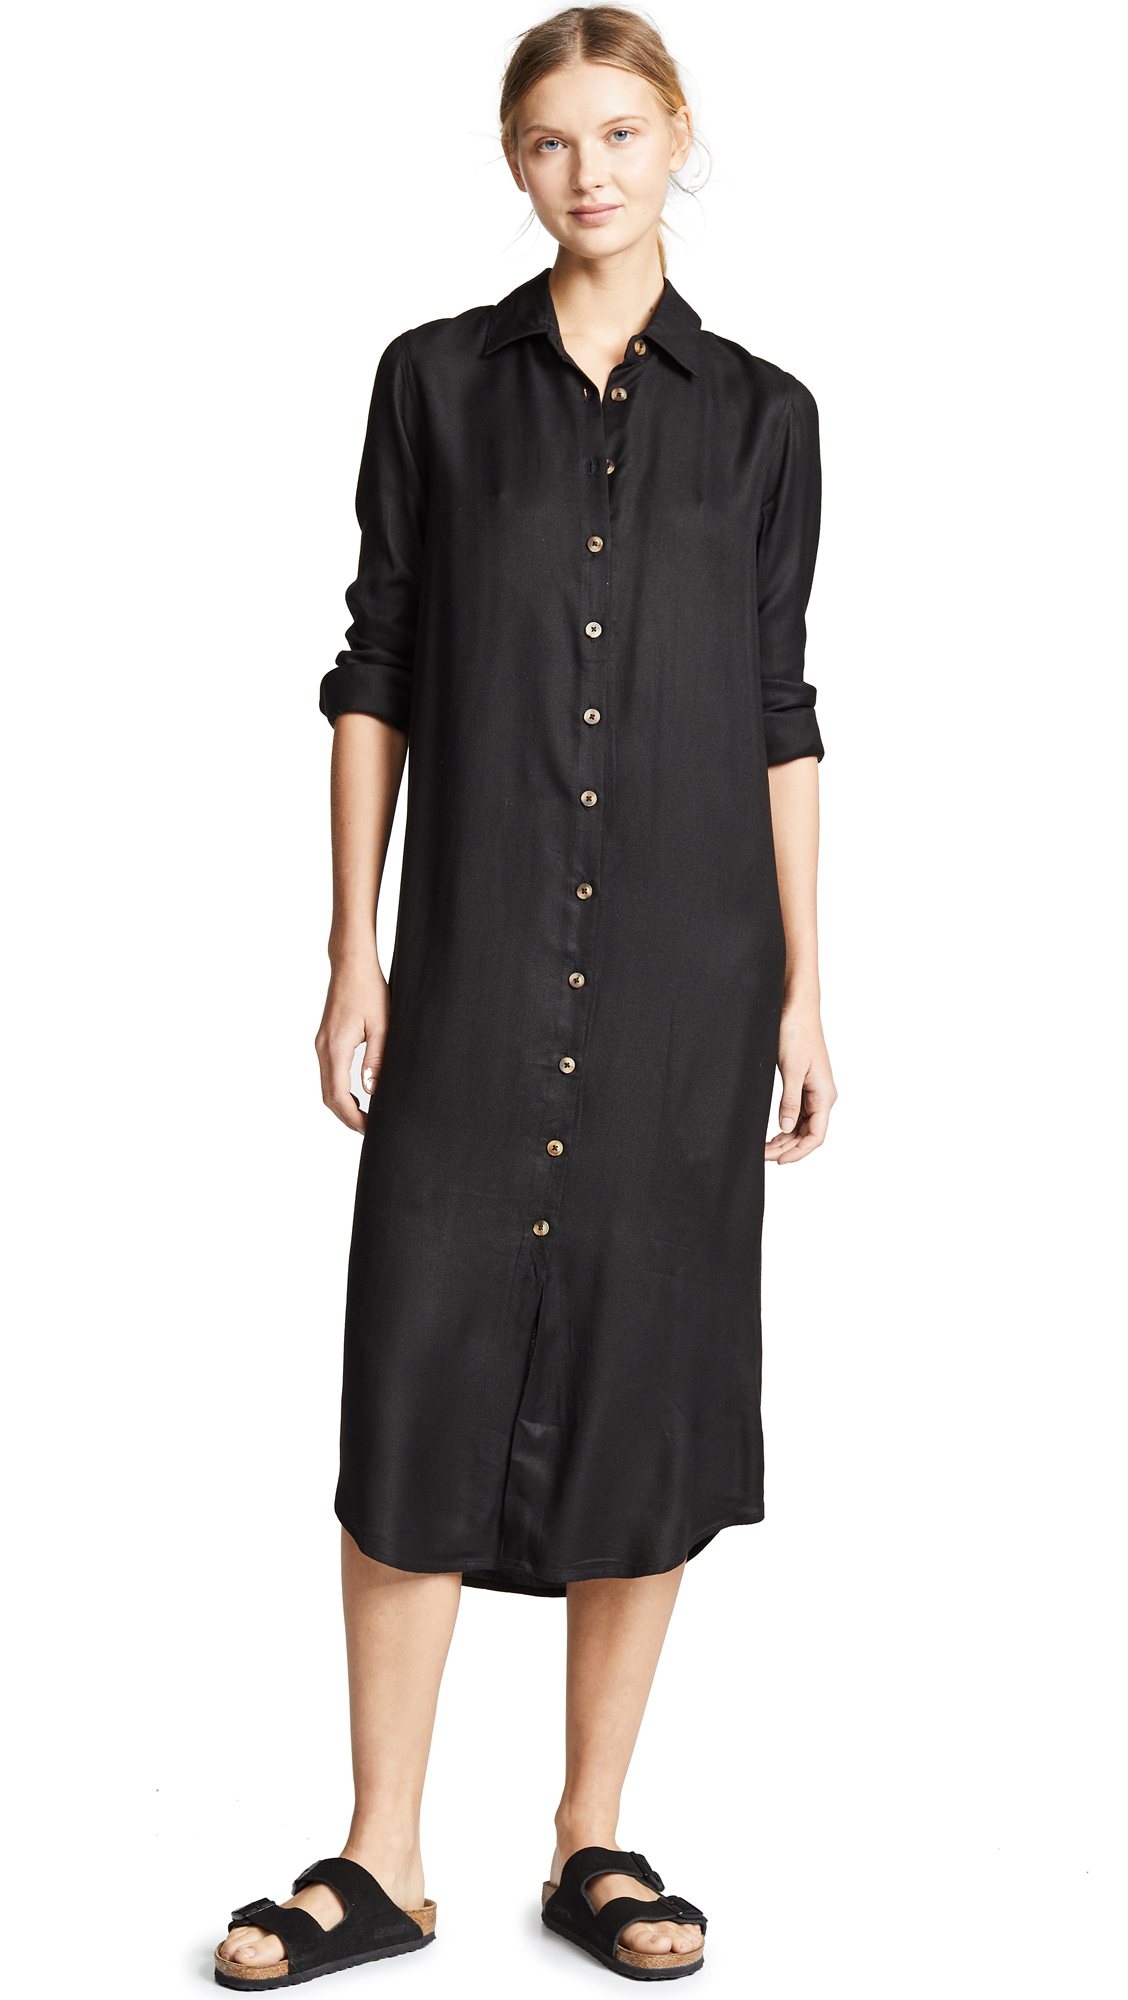 VETIVER Avalon Button Up Maxi Dress in Black